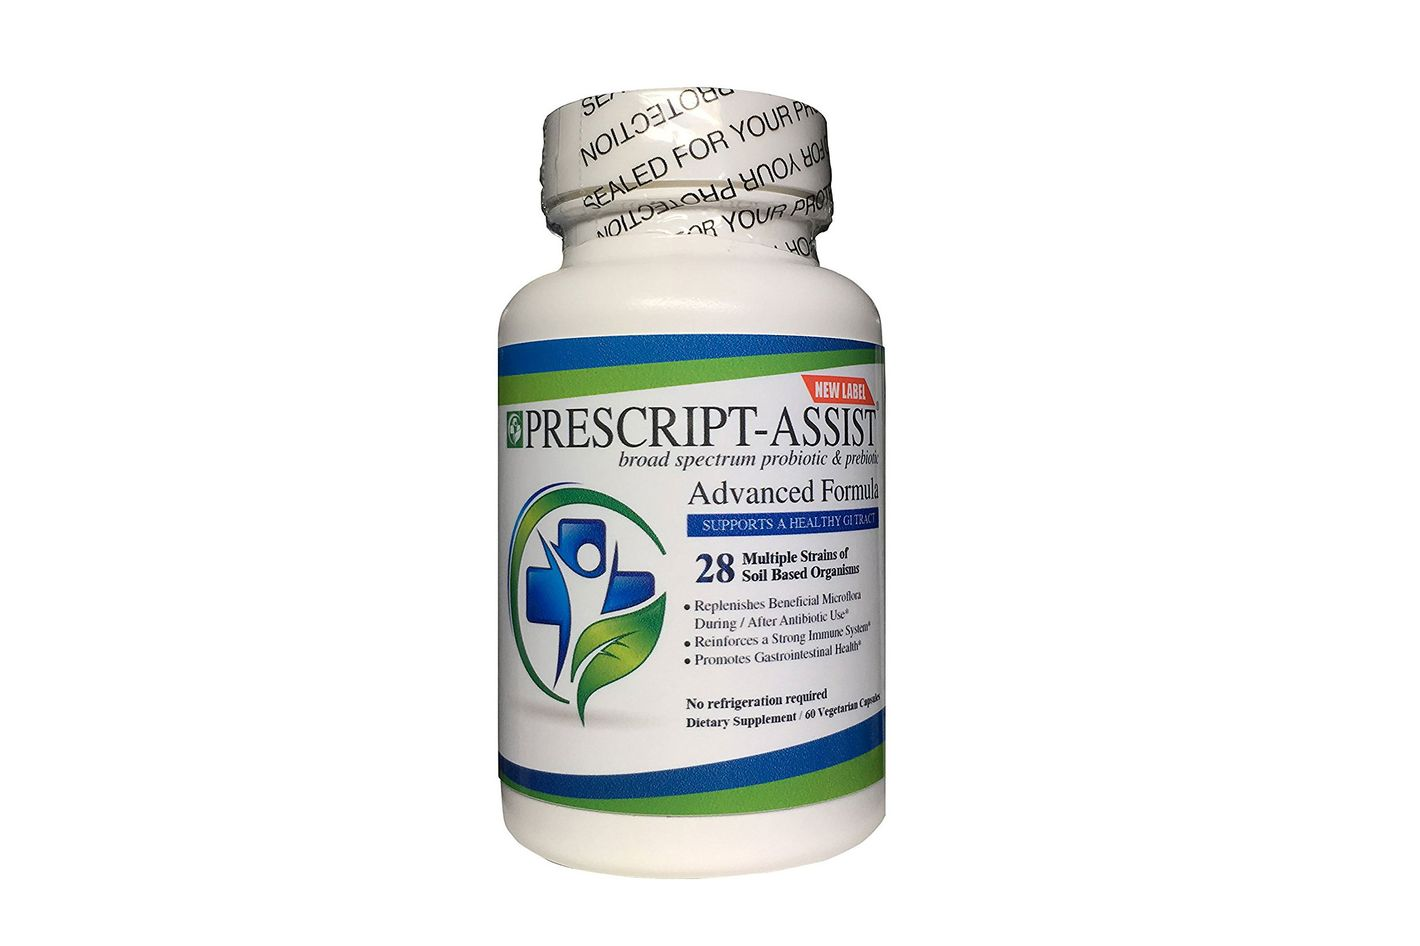 Prescript-Assist Soil based Probiotic and Prebiotic, 60 capsules